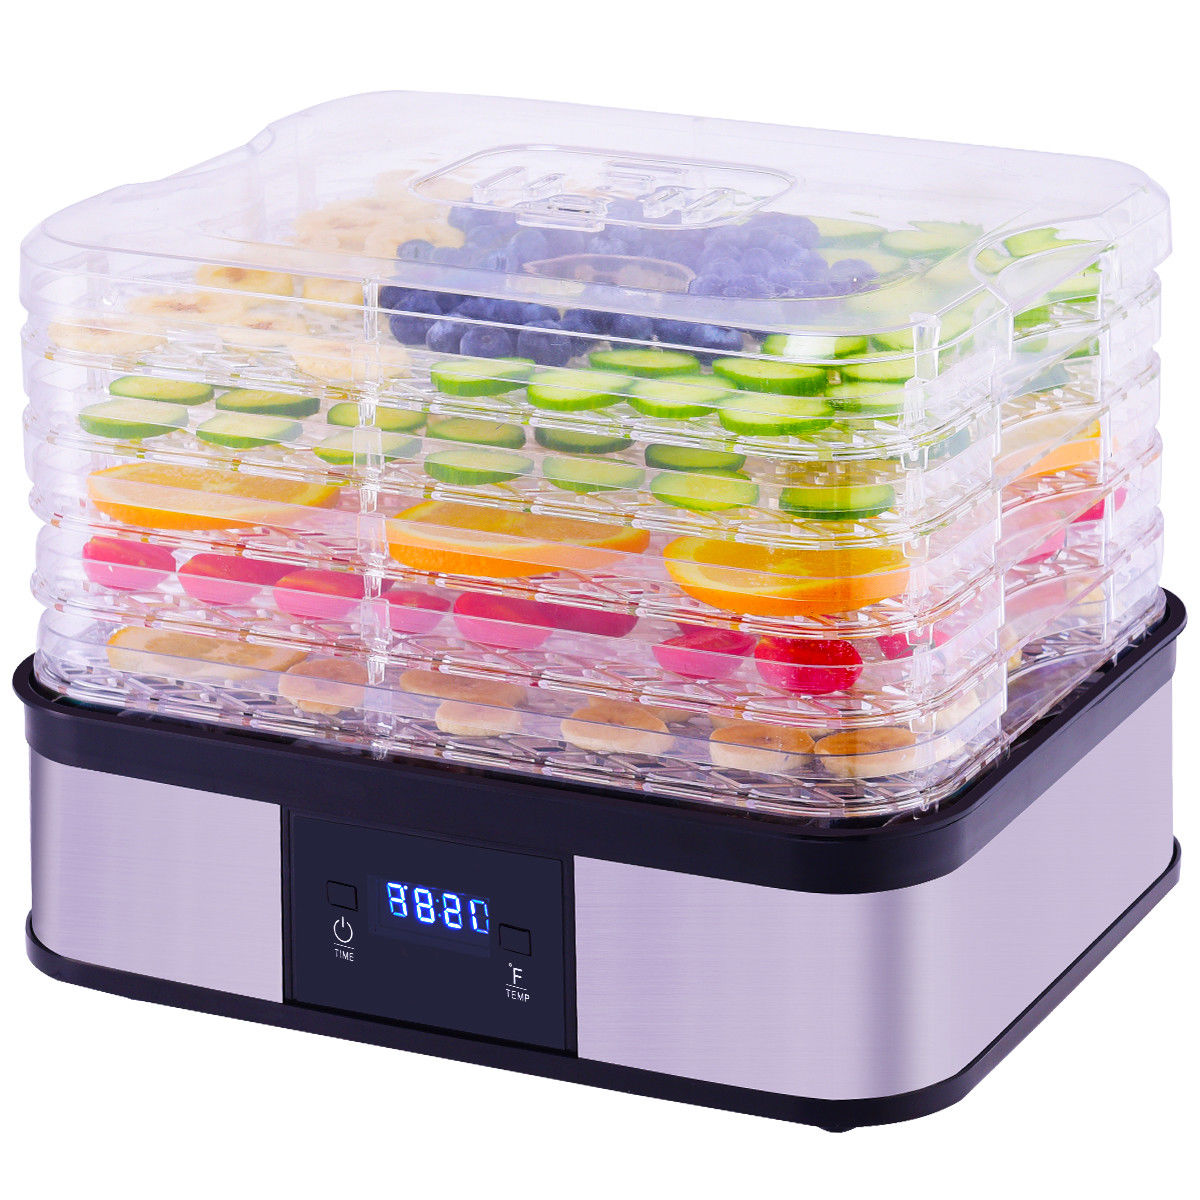 Costway Food Dehydrator Preserver 5 Tray Fruit Vegetable Dryer Timer Temperature Control